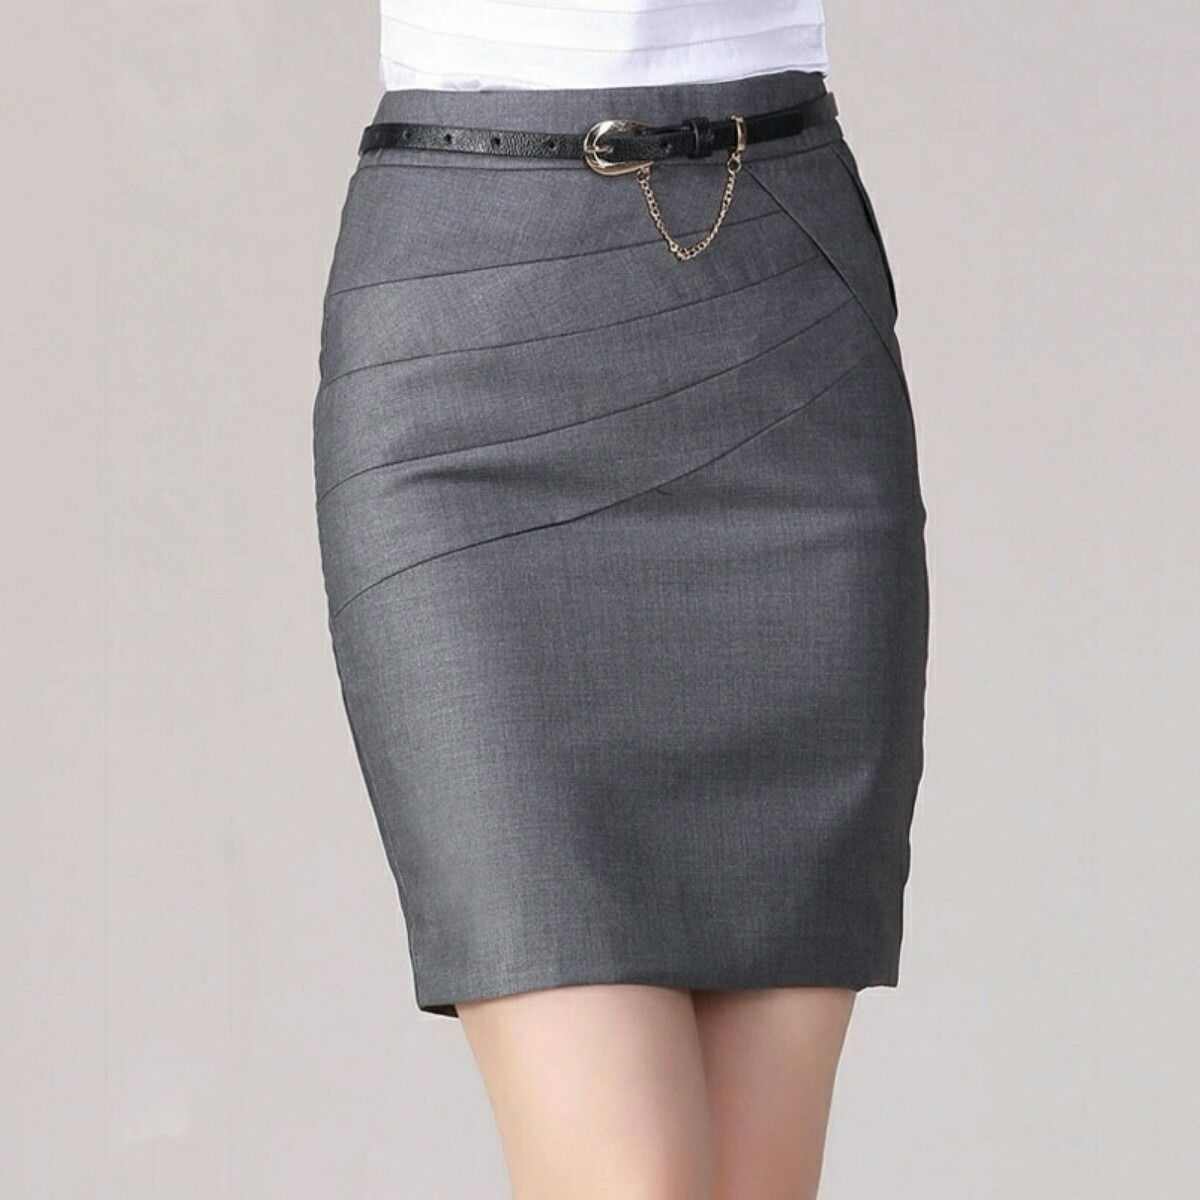 Ropademoda Me Womens Skirt Womens Pencil Skirts Pencil Skirt Casual